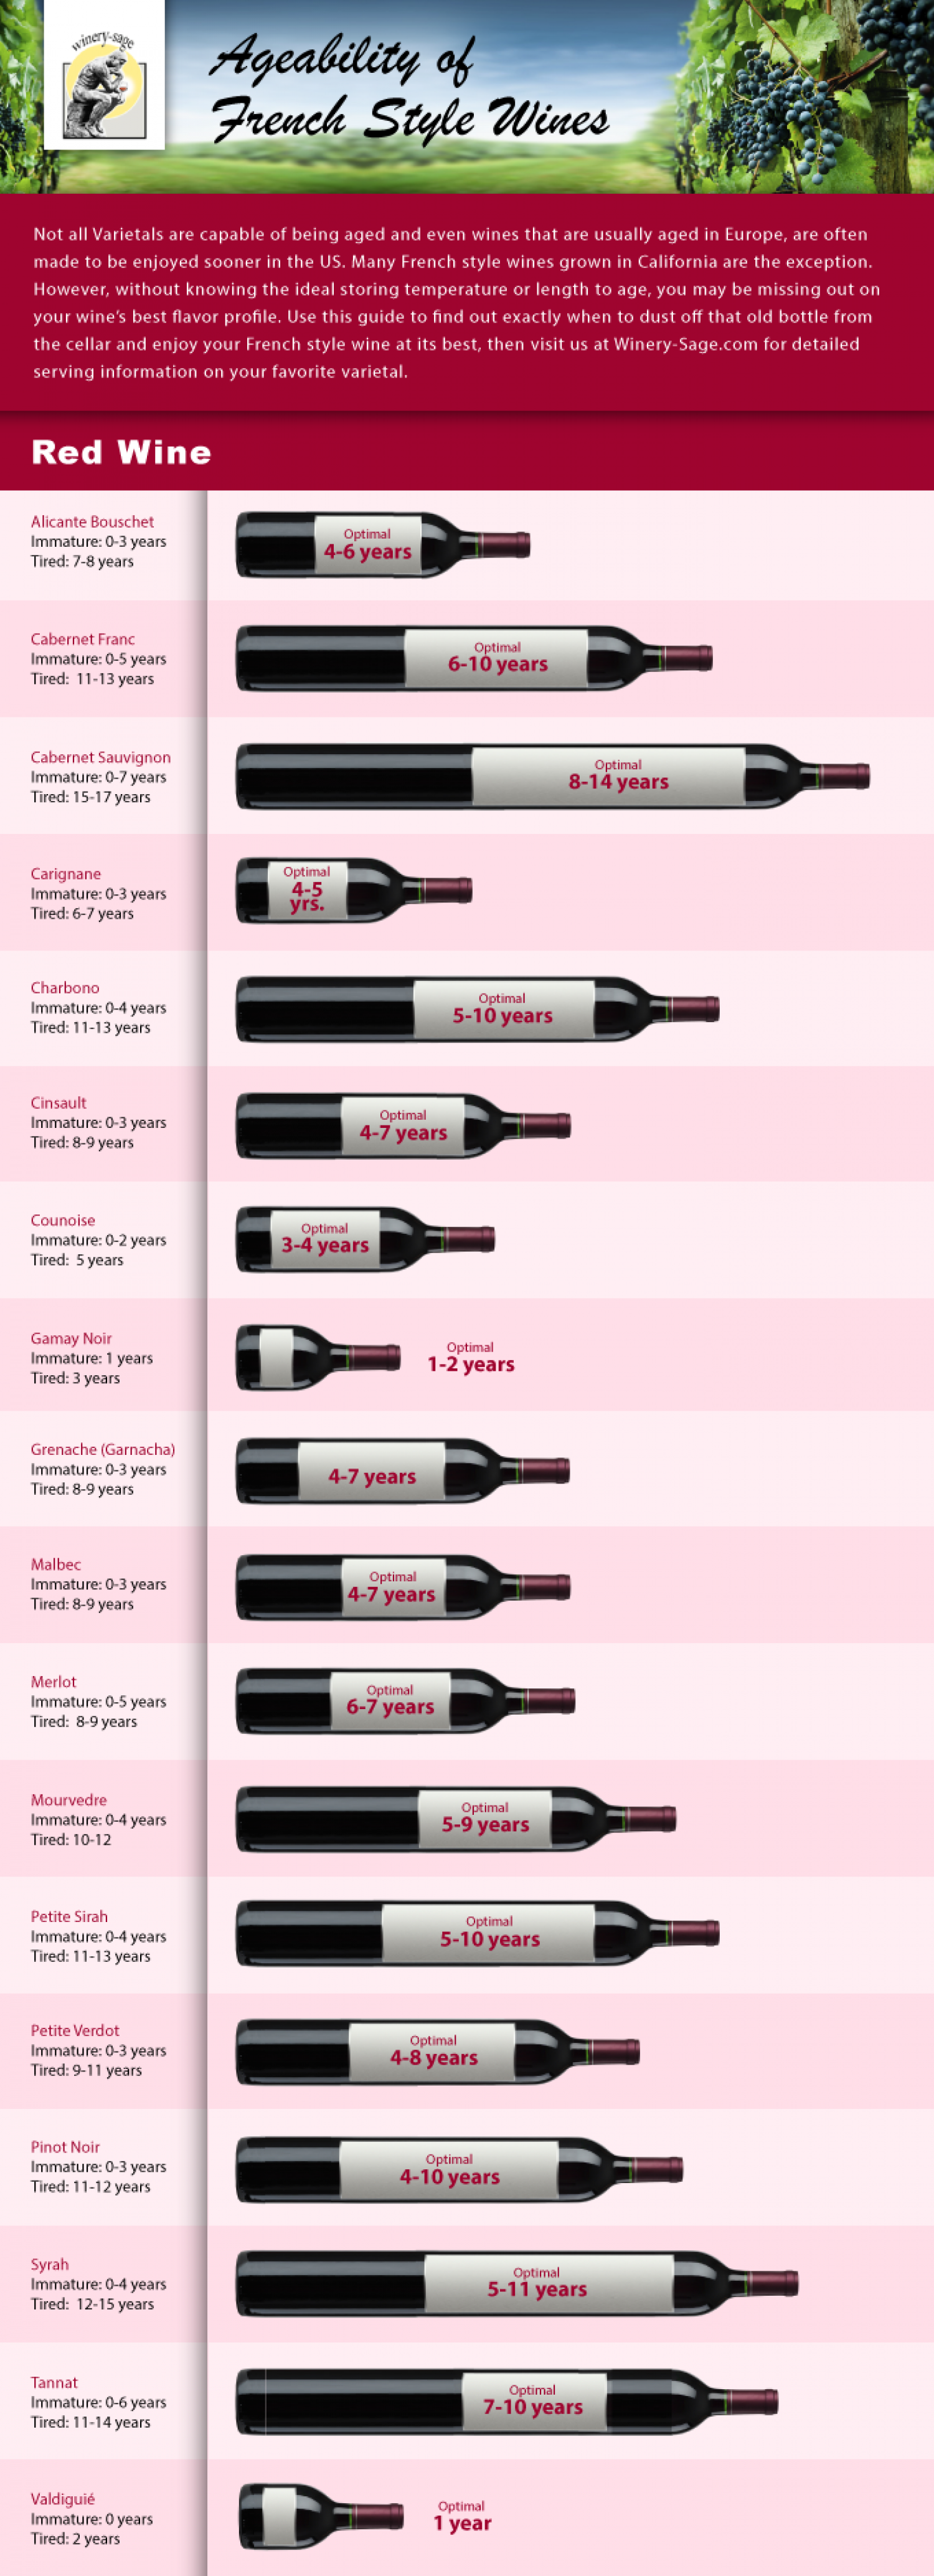 Ageability of French Red Wines Infographic